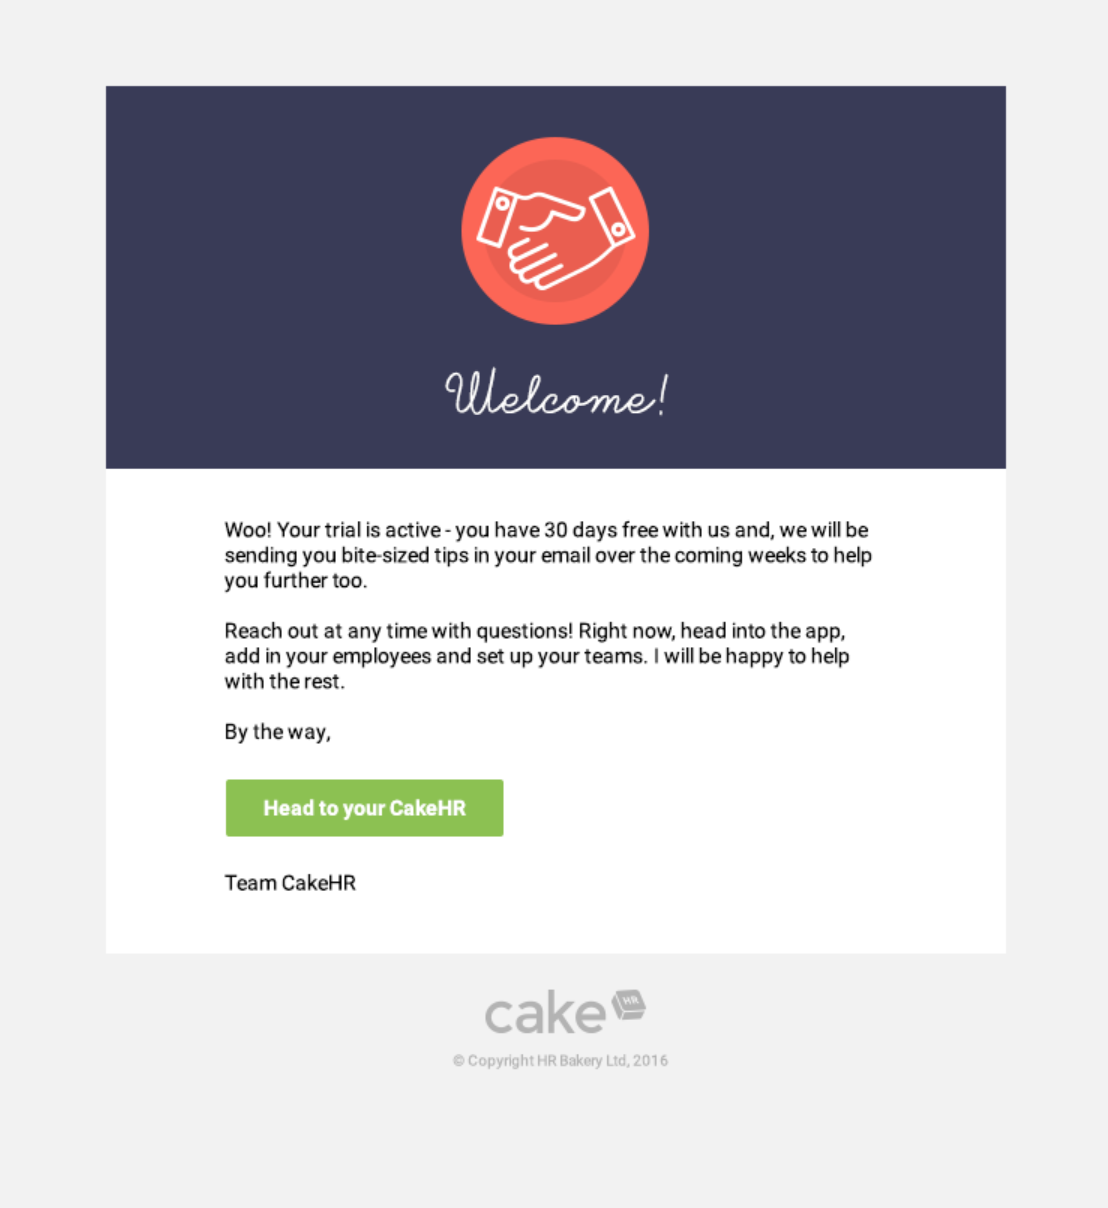 Image of welcome email.